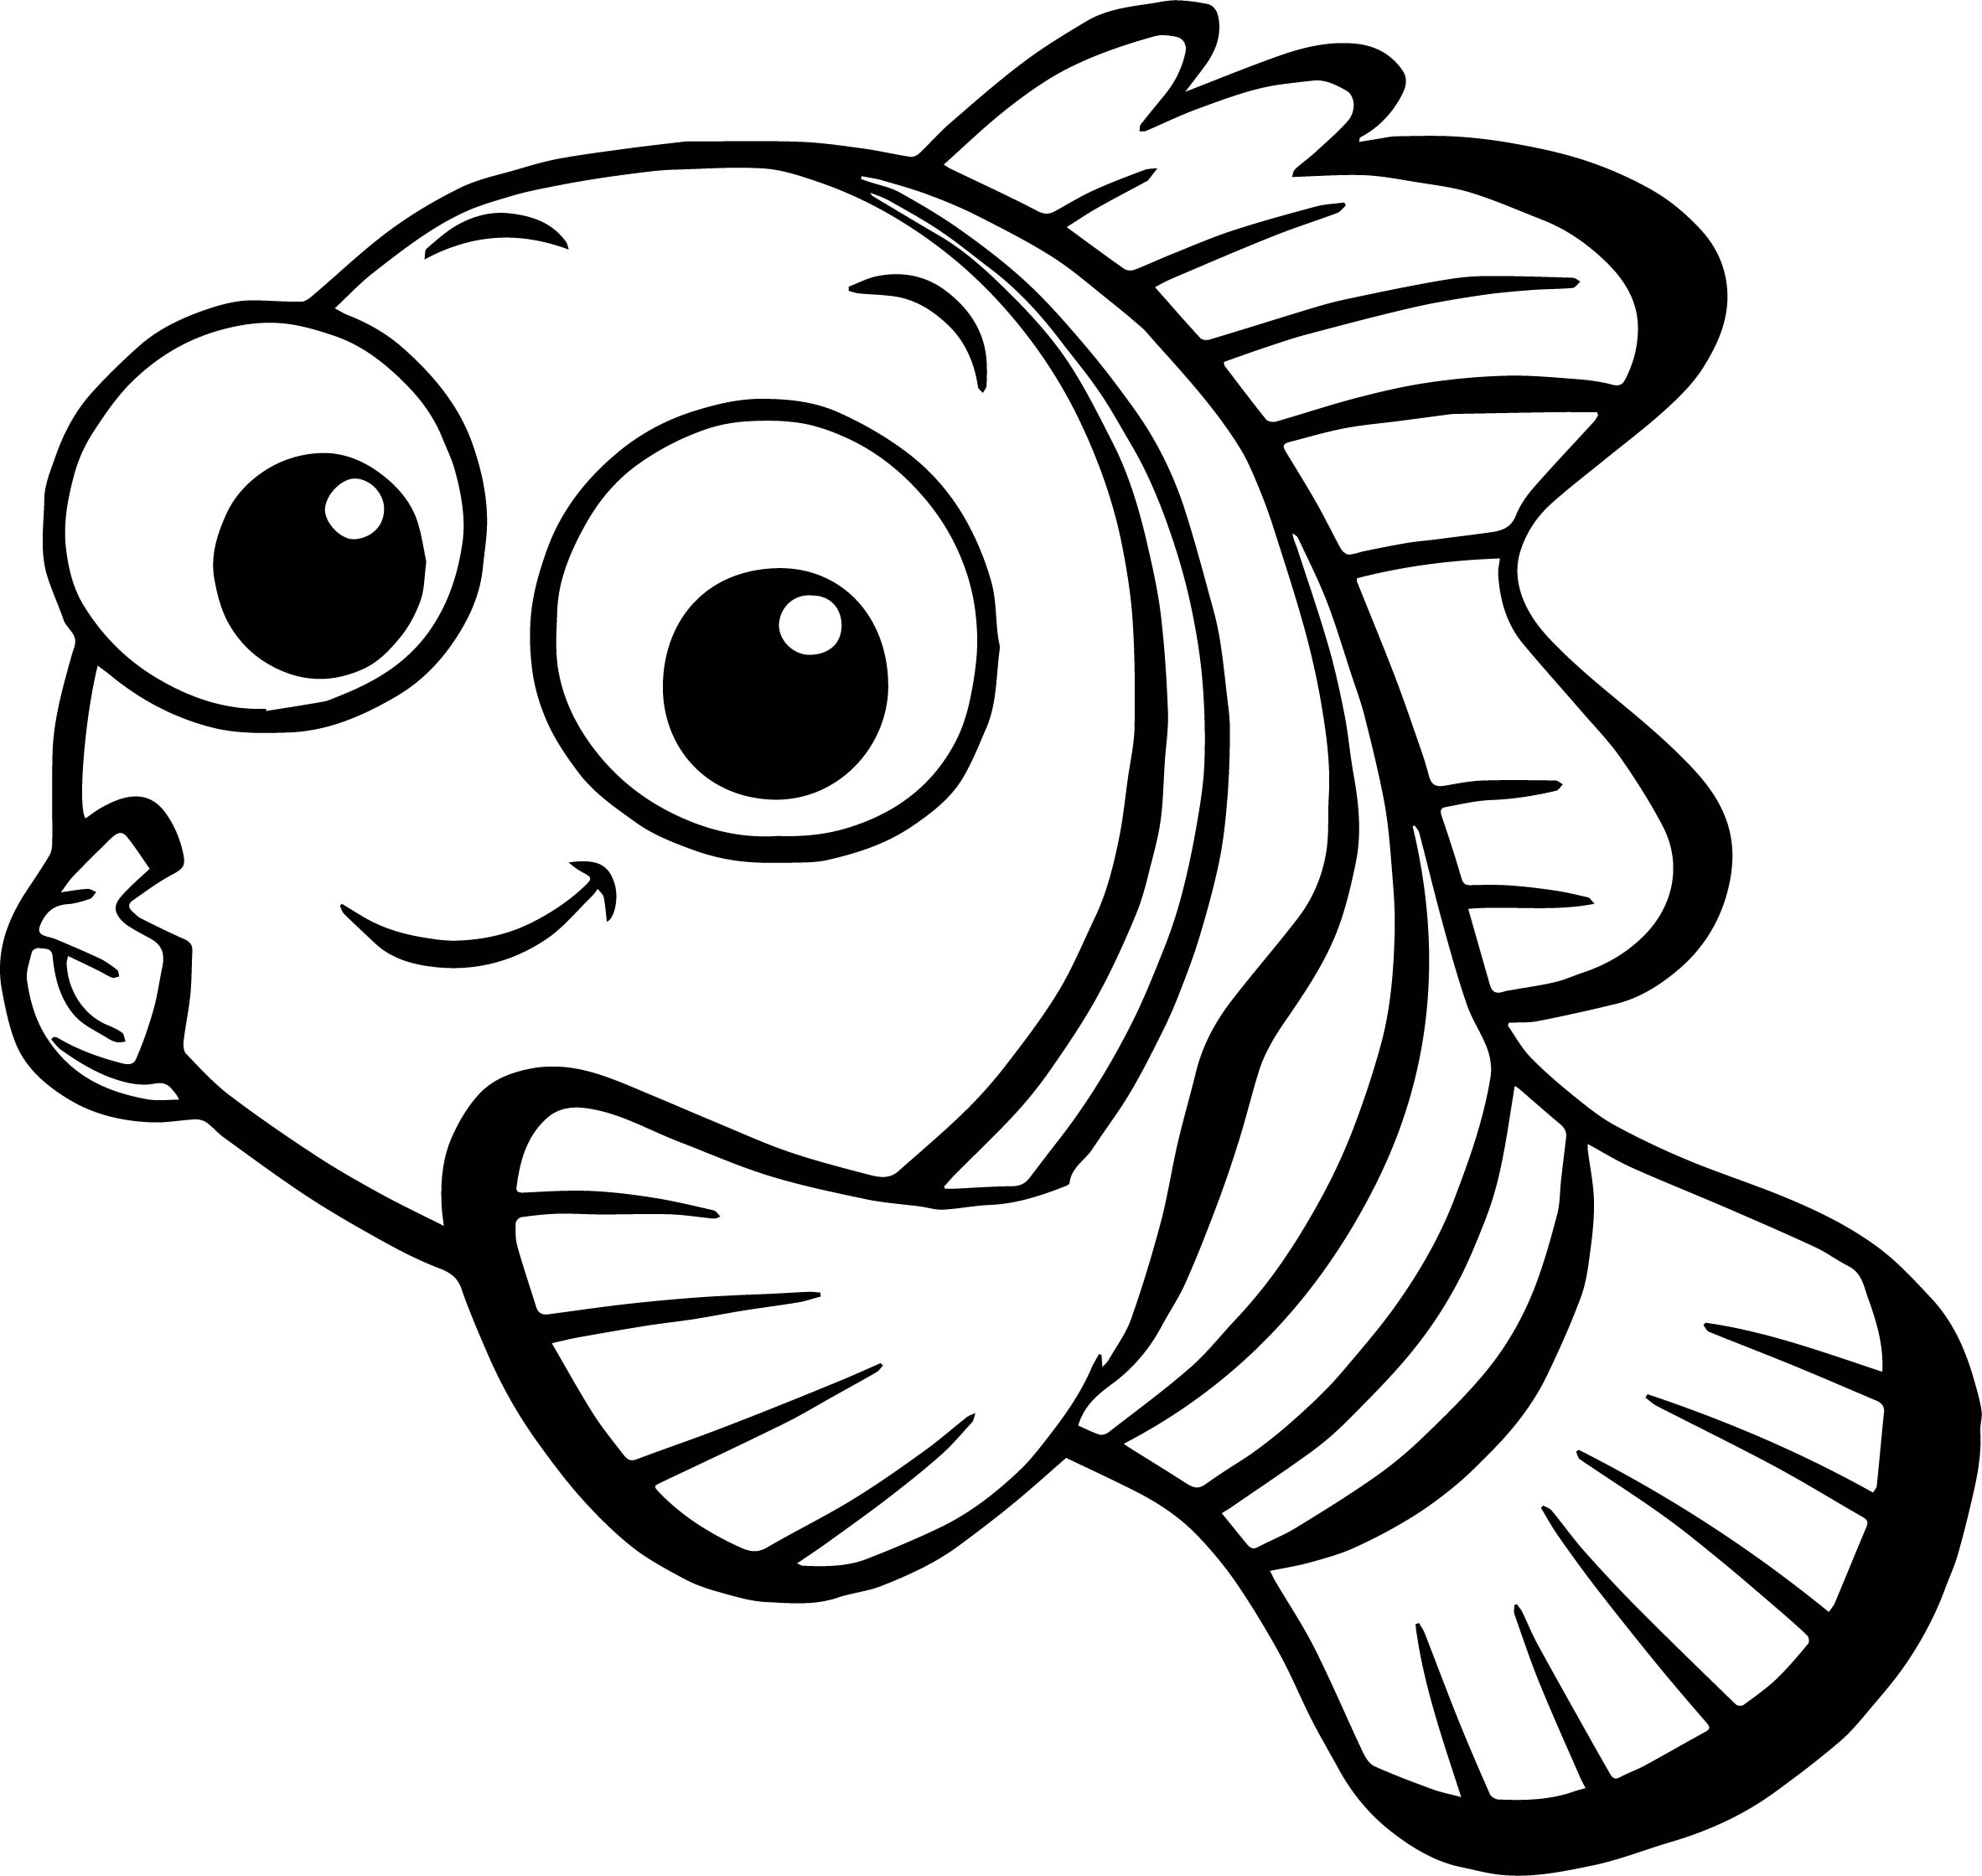 Disney Finding Nemo Nemo Coloring Pages Wecoloringpage